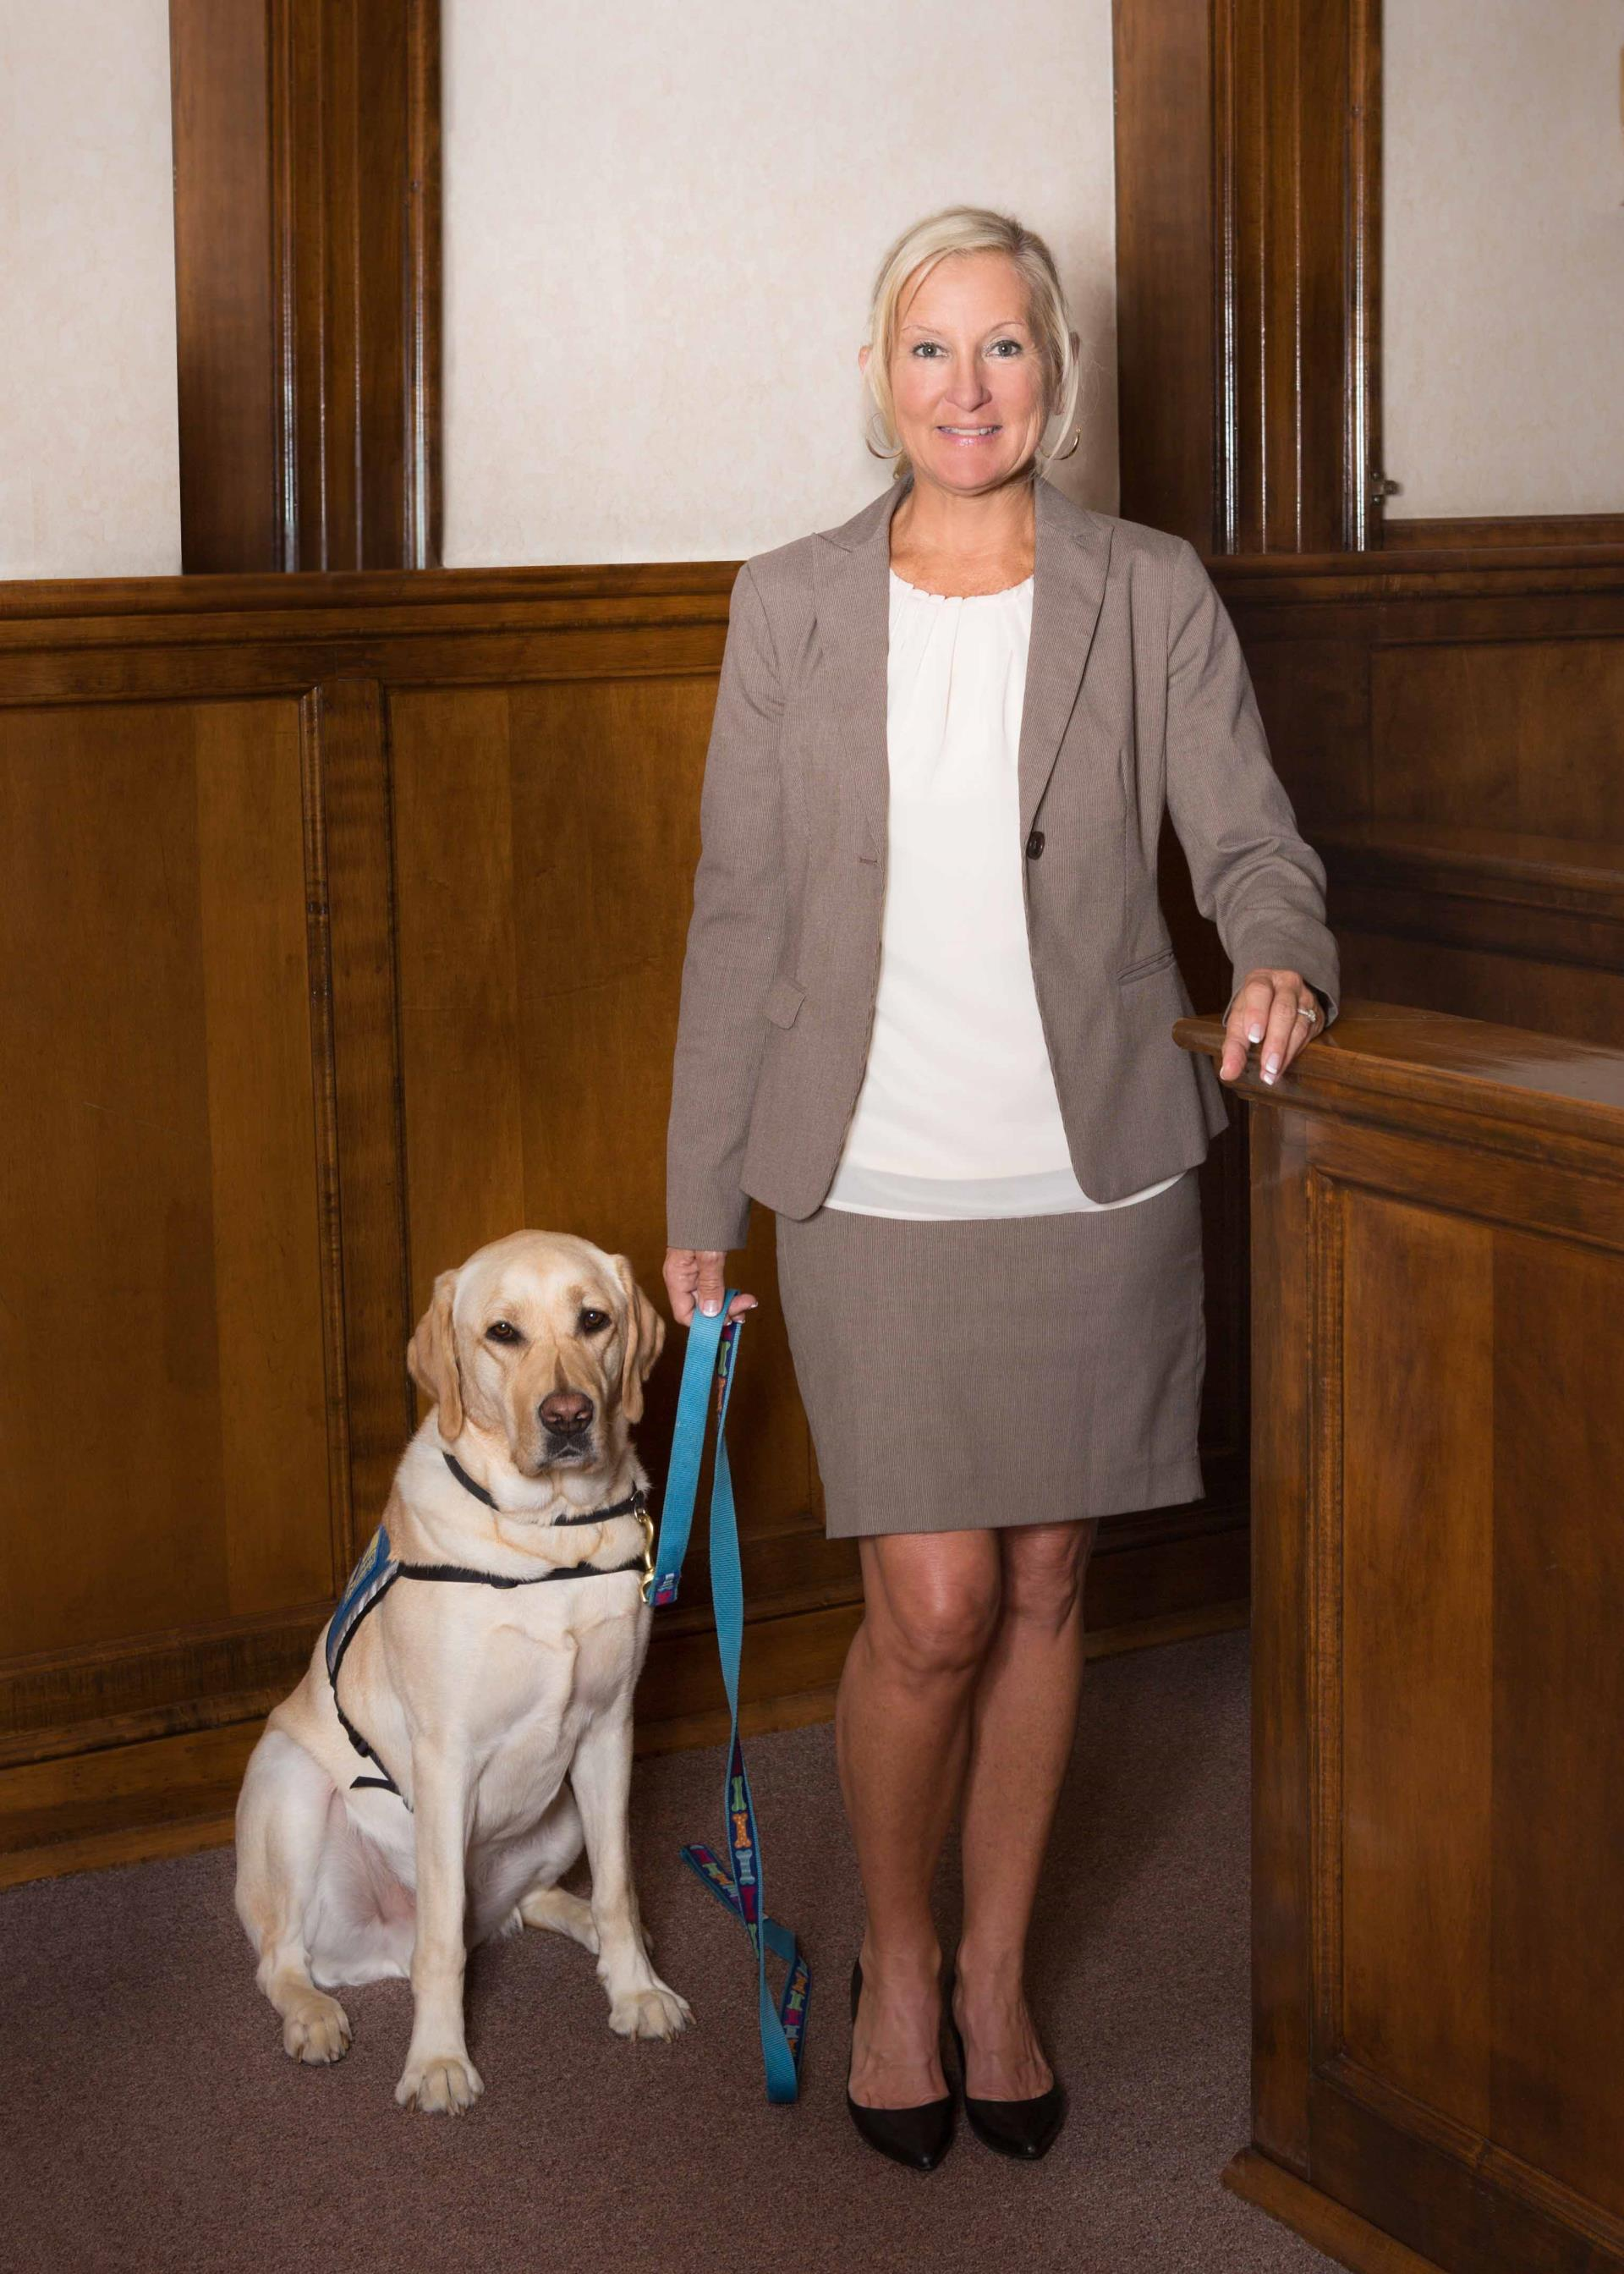 Murph, the courthouse facility dog for the victim-witness program, accompanied by Janet Balser, his handler